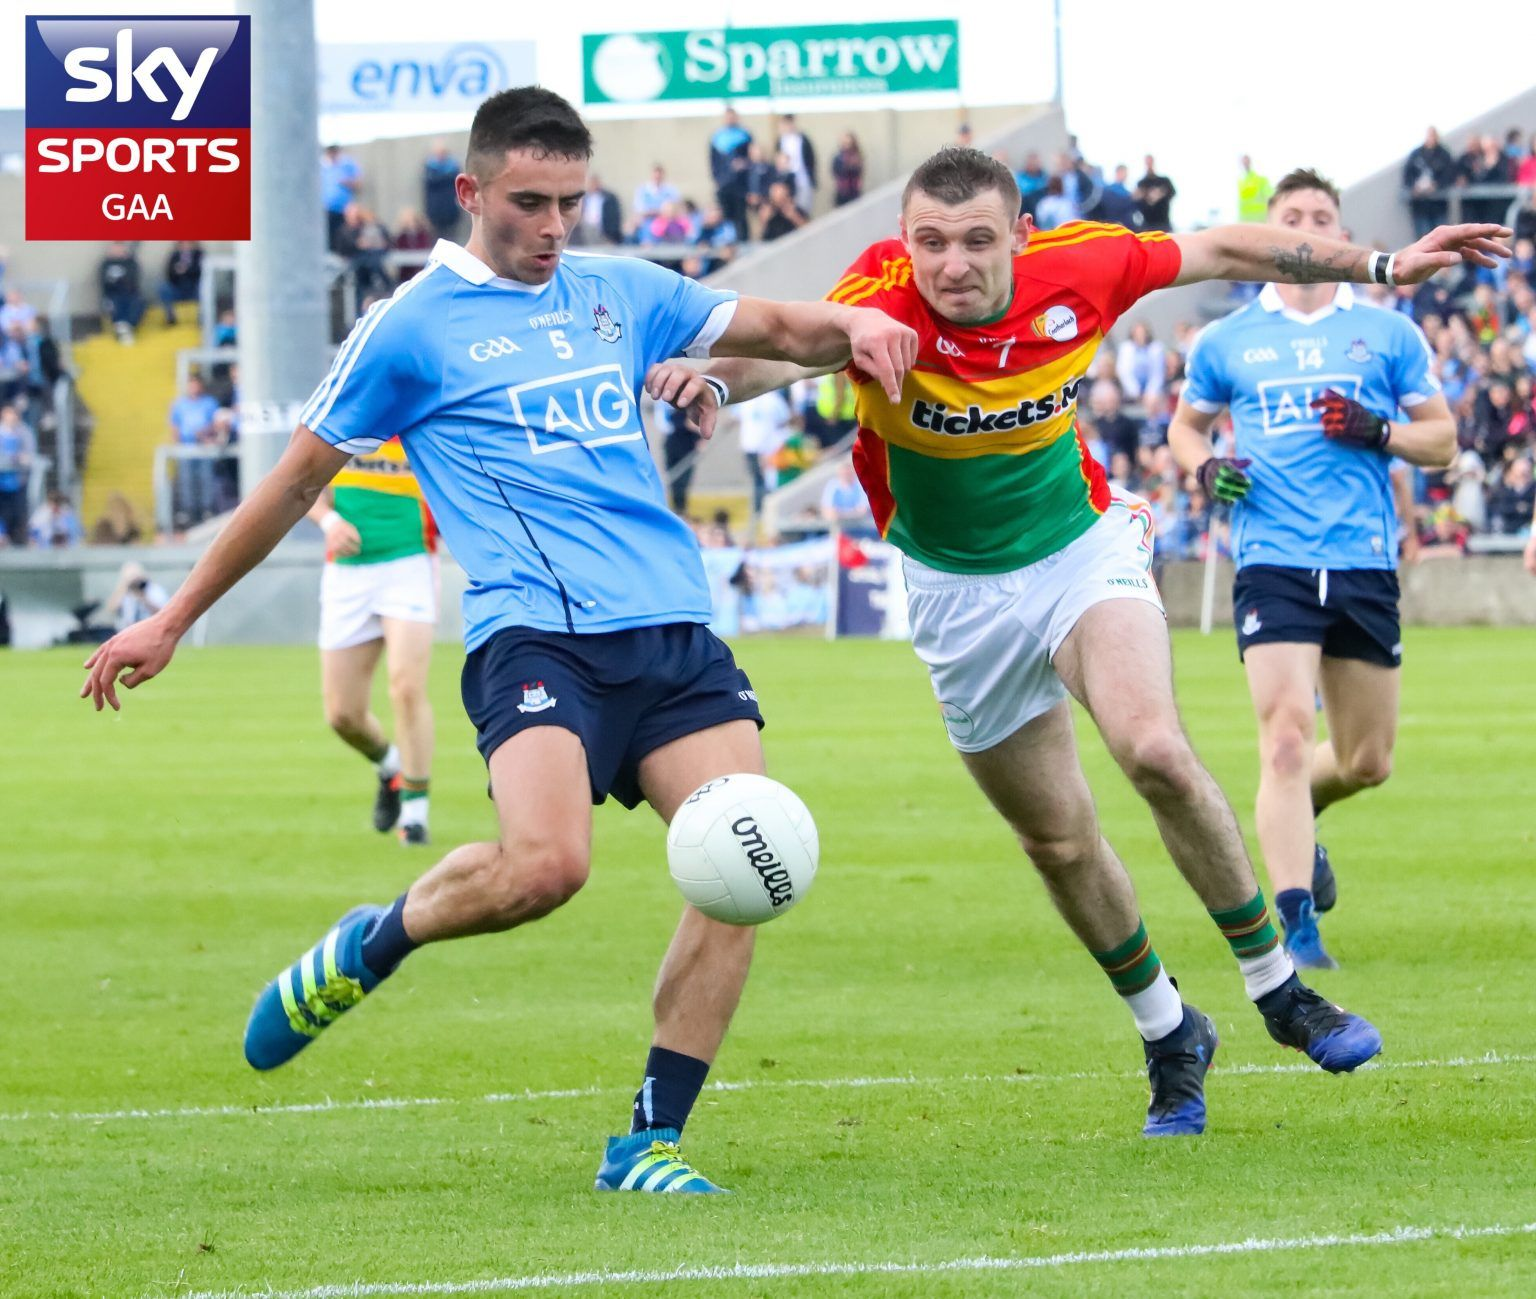 Sky Sports Announce Live GAA Schedule For 2018 Sports